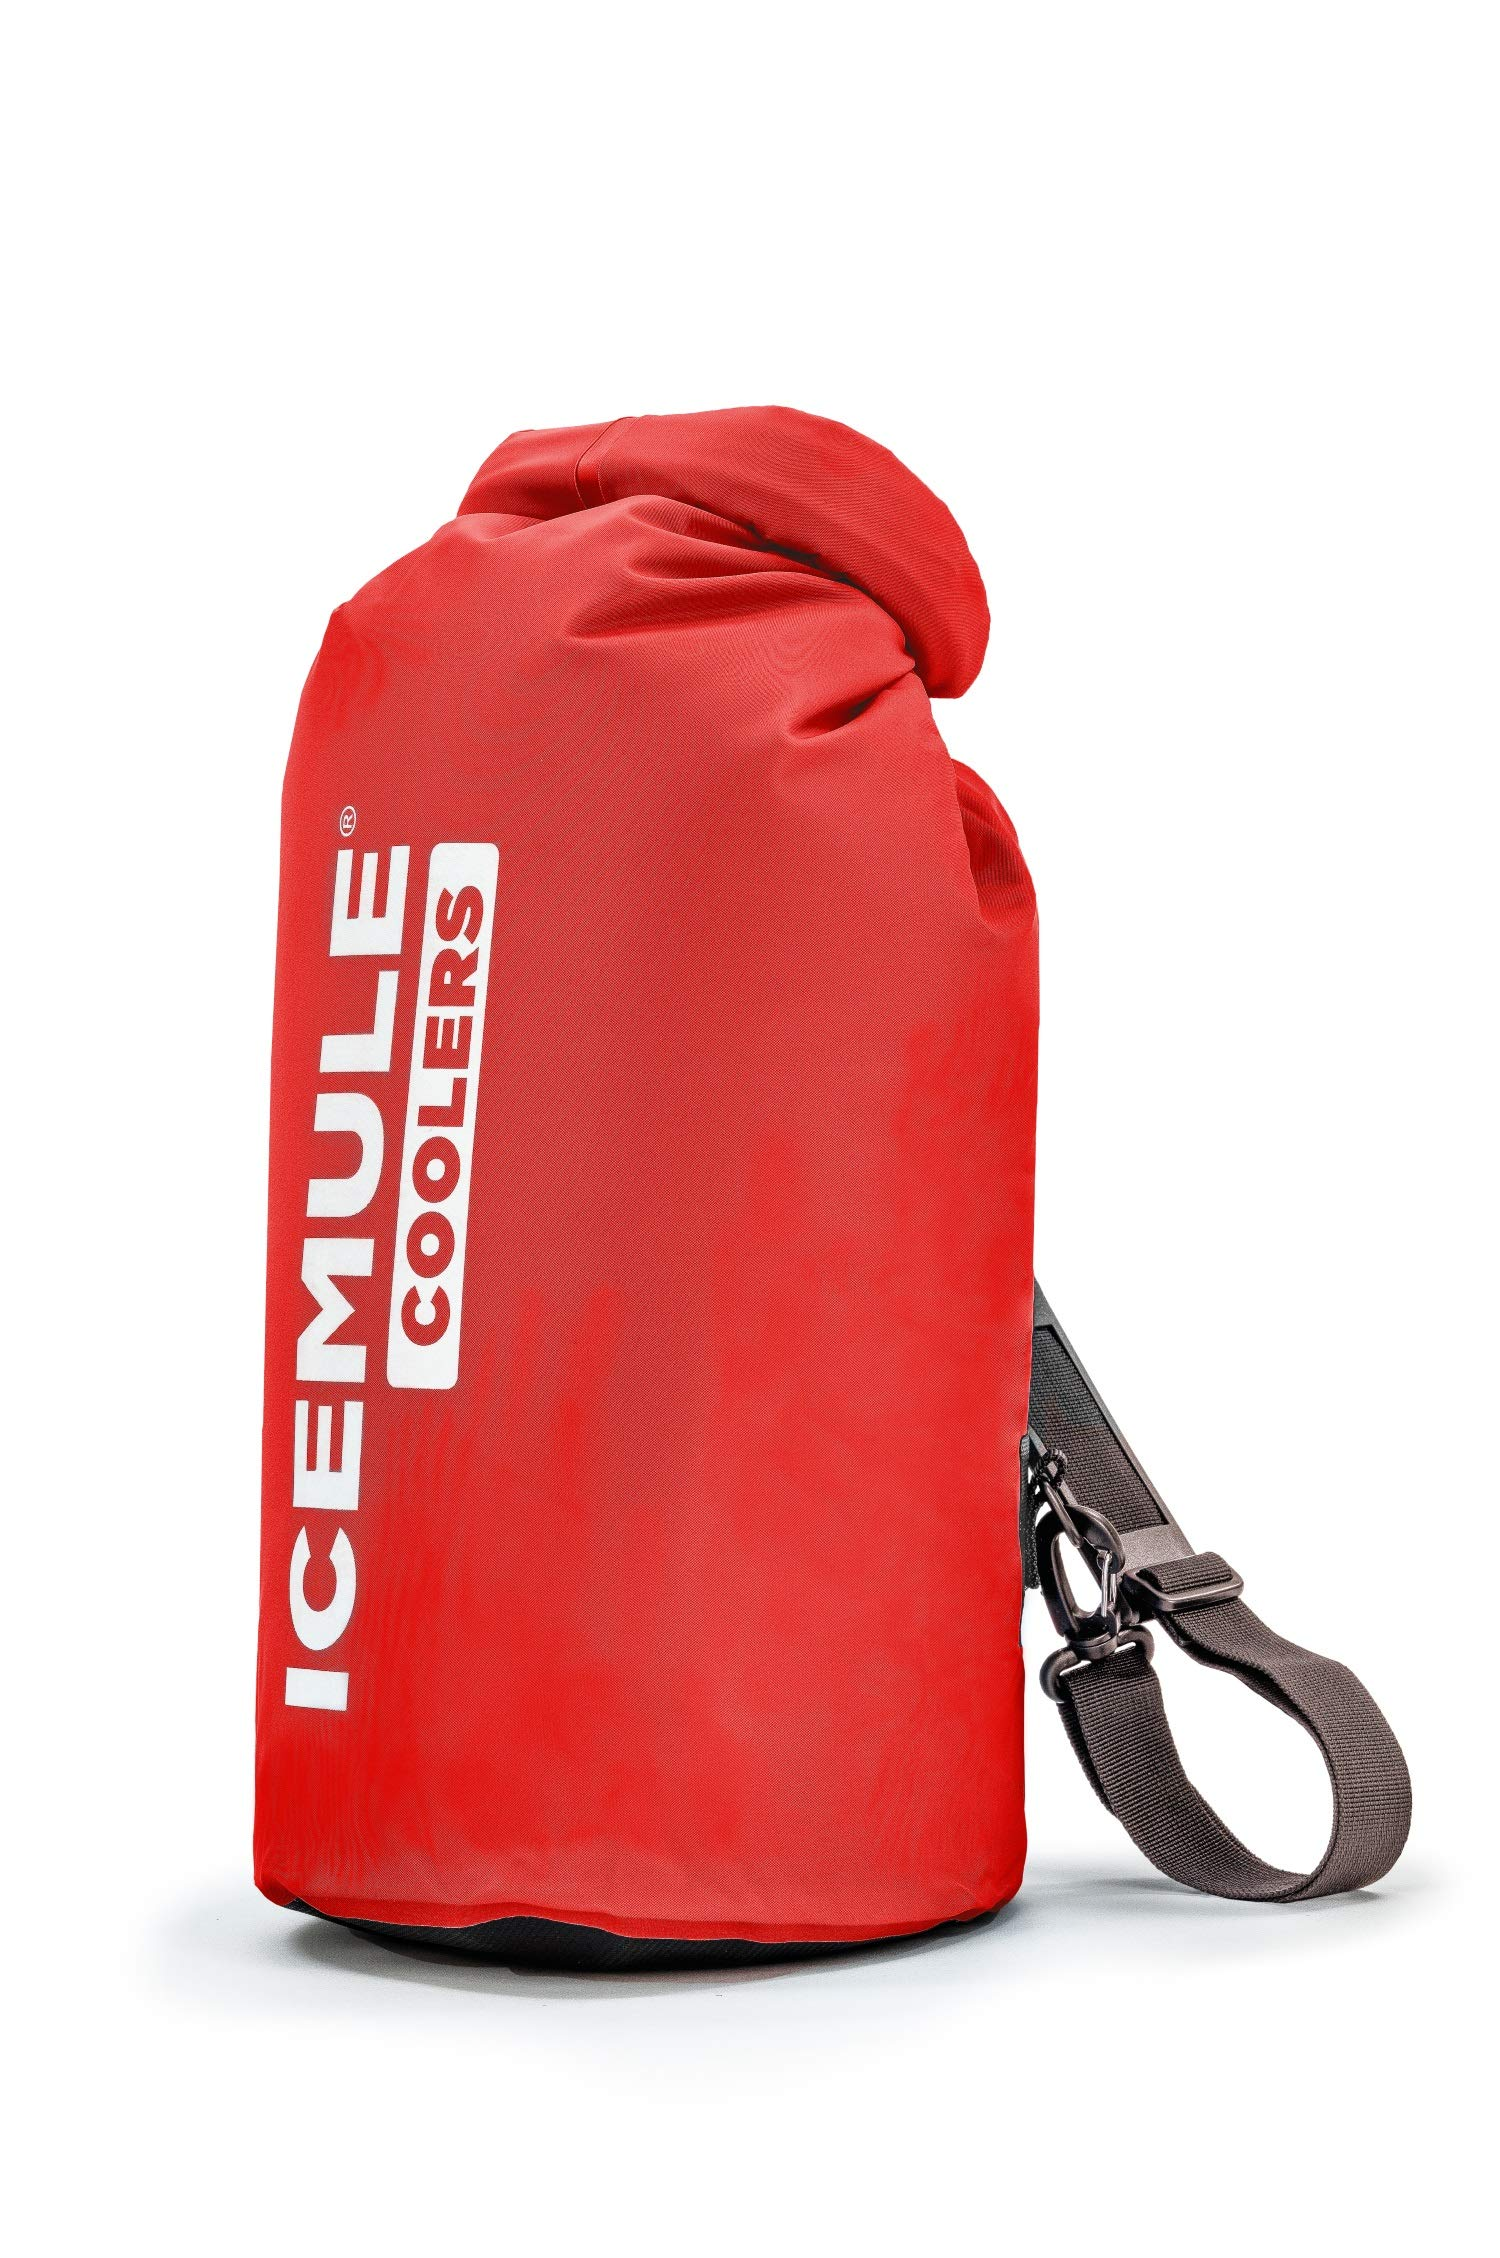 IceMule Classic Insulated Backpack Cooler Bag - Hands-Free, Collapsible, and Waterproof, This Portable Cooler is an Ideal Sling Backpack for Hiking, The Beach, Picnics and Camping-Small, Crimson by IceMule